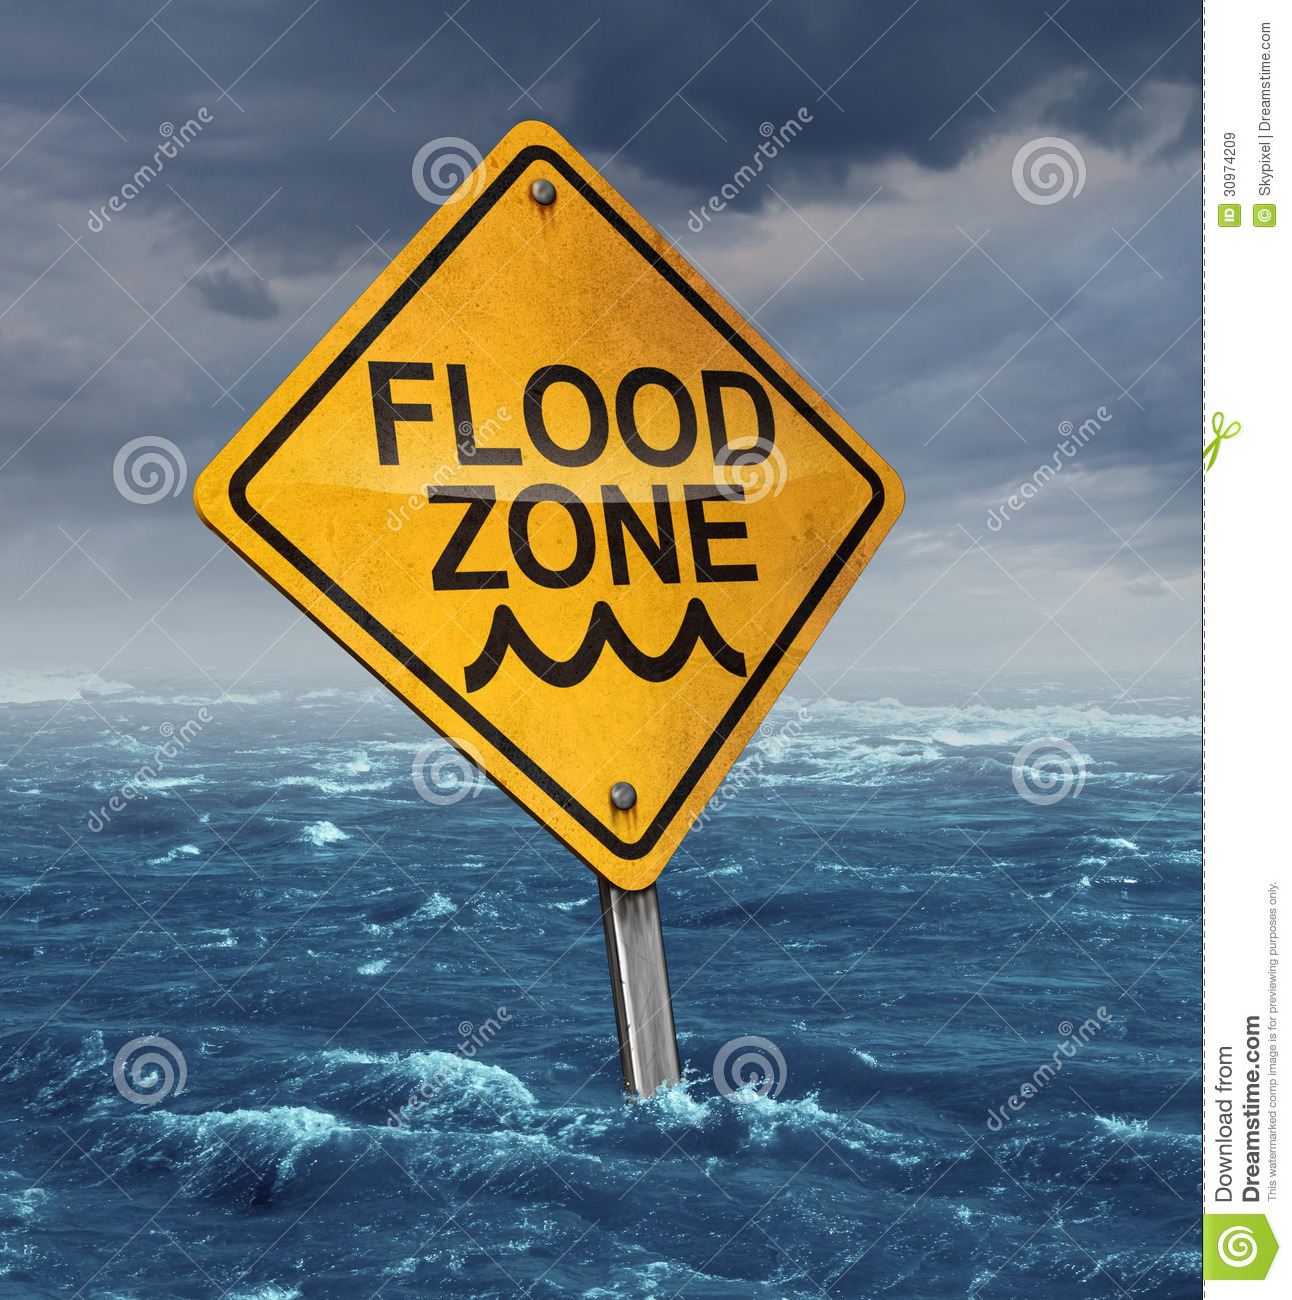 Flood clipart free.